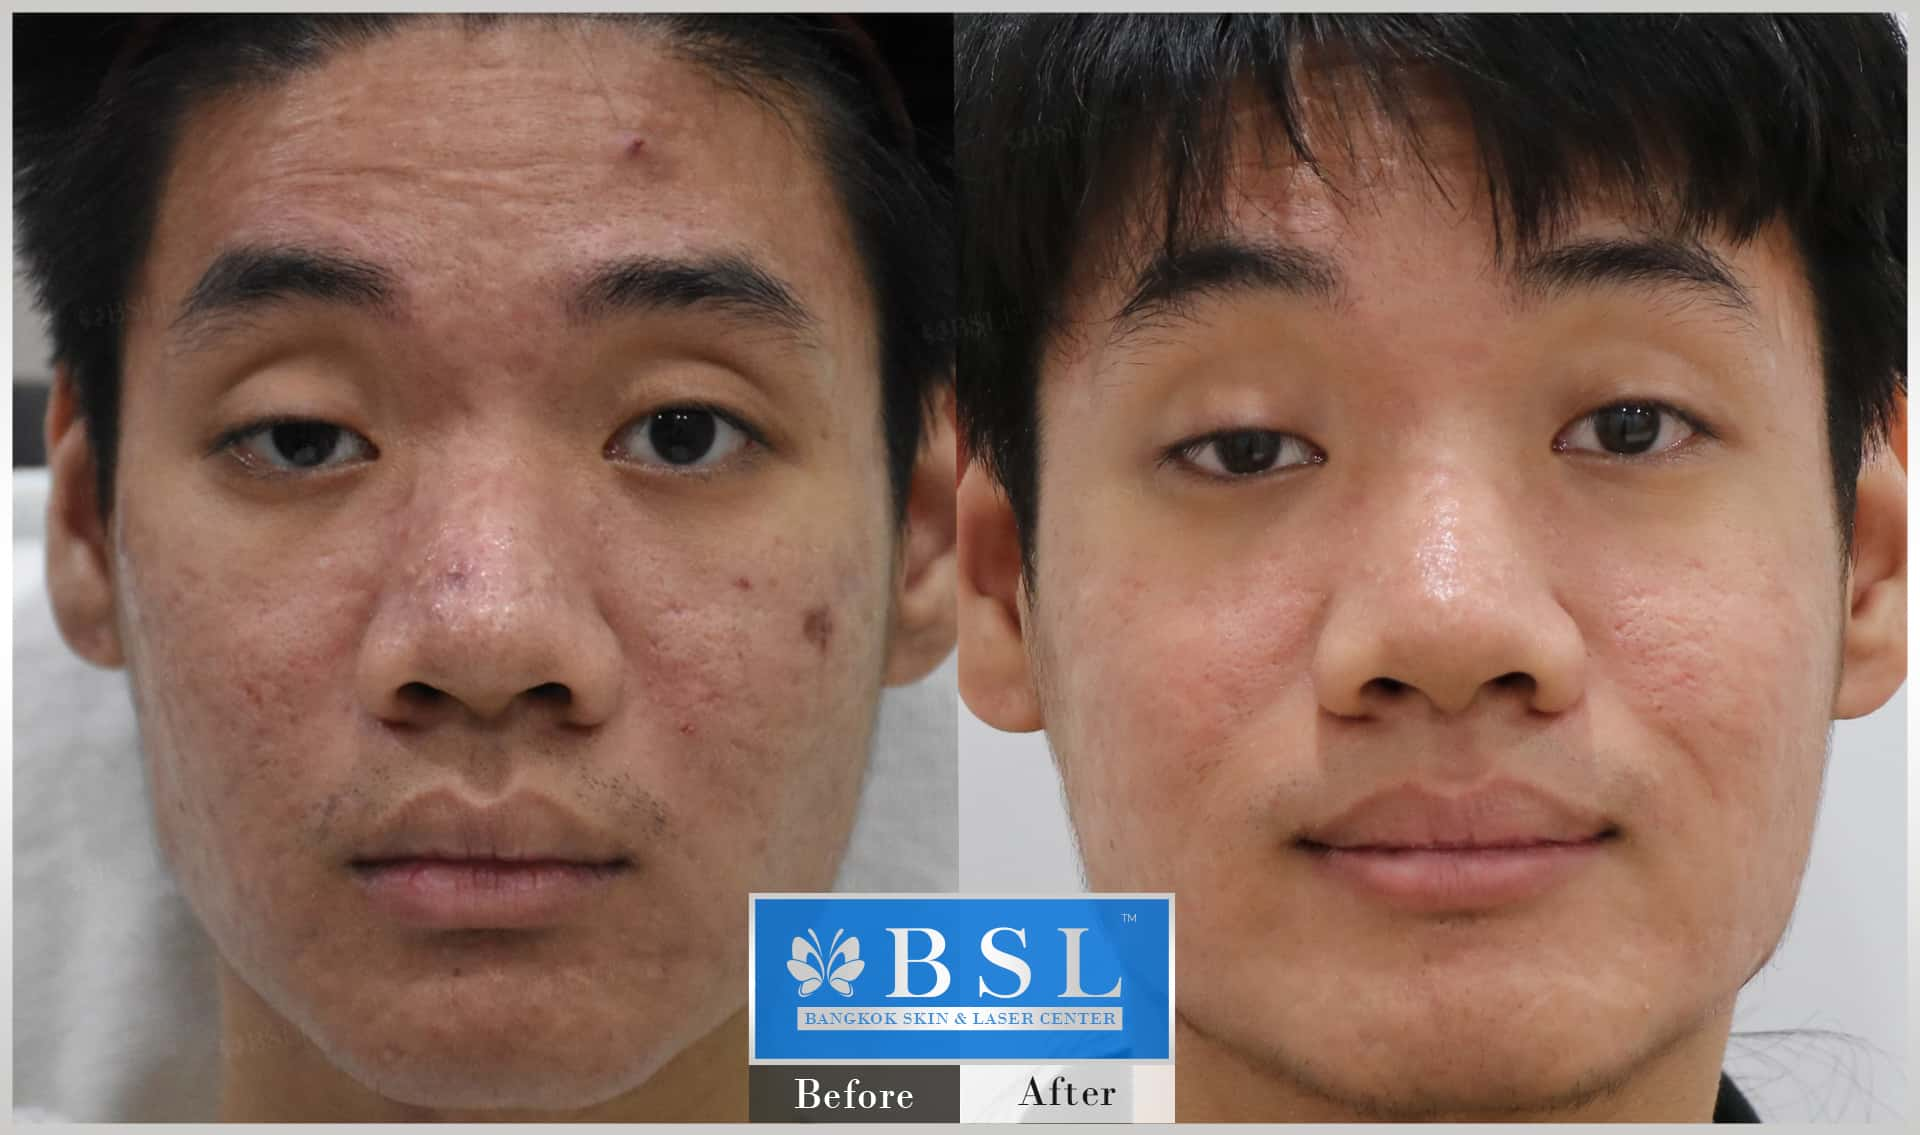 before-after-results-scar-treatment-008